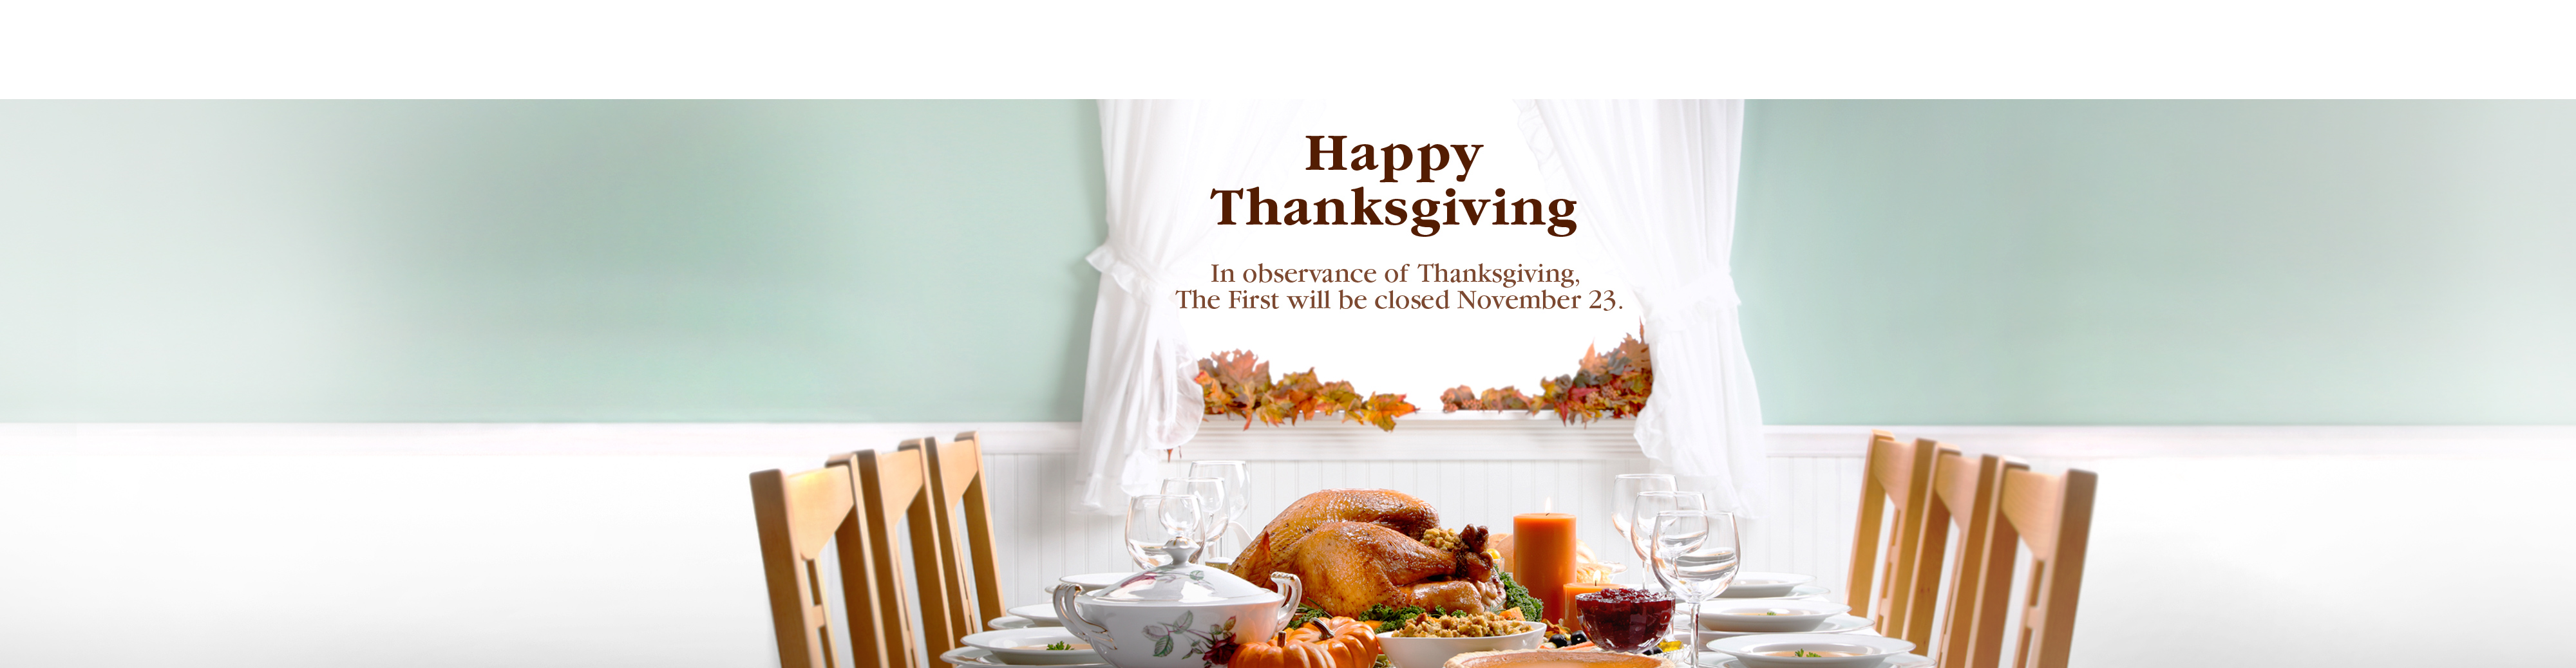 Happy Thanksgiving. In observance of Thanksgiving, The First will be closed November 23.